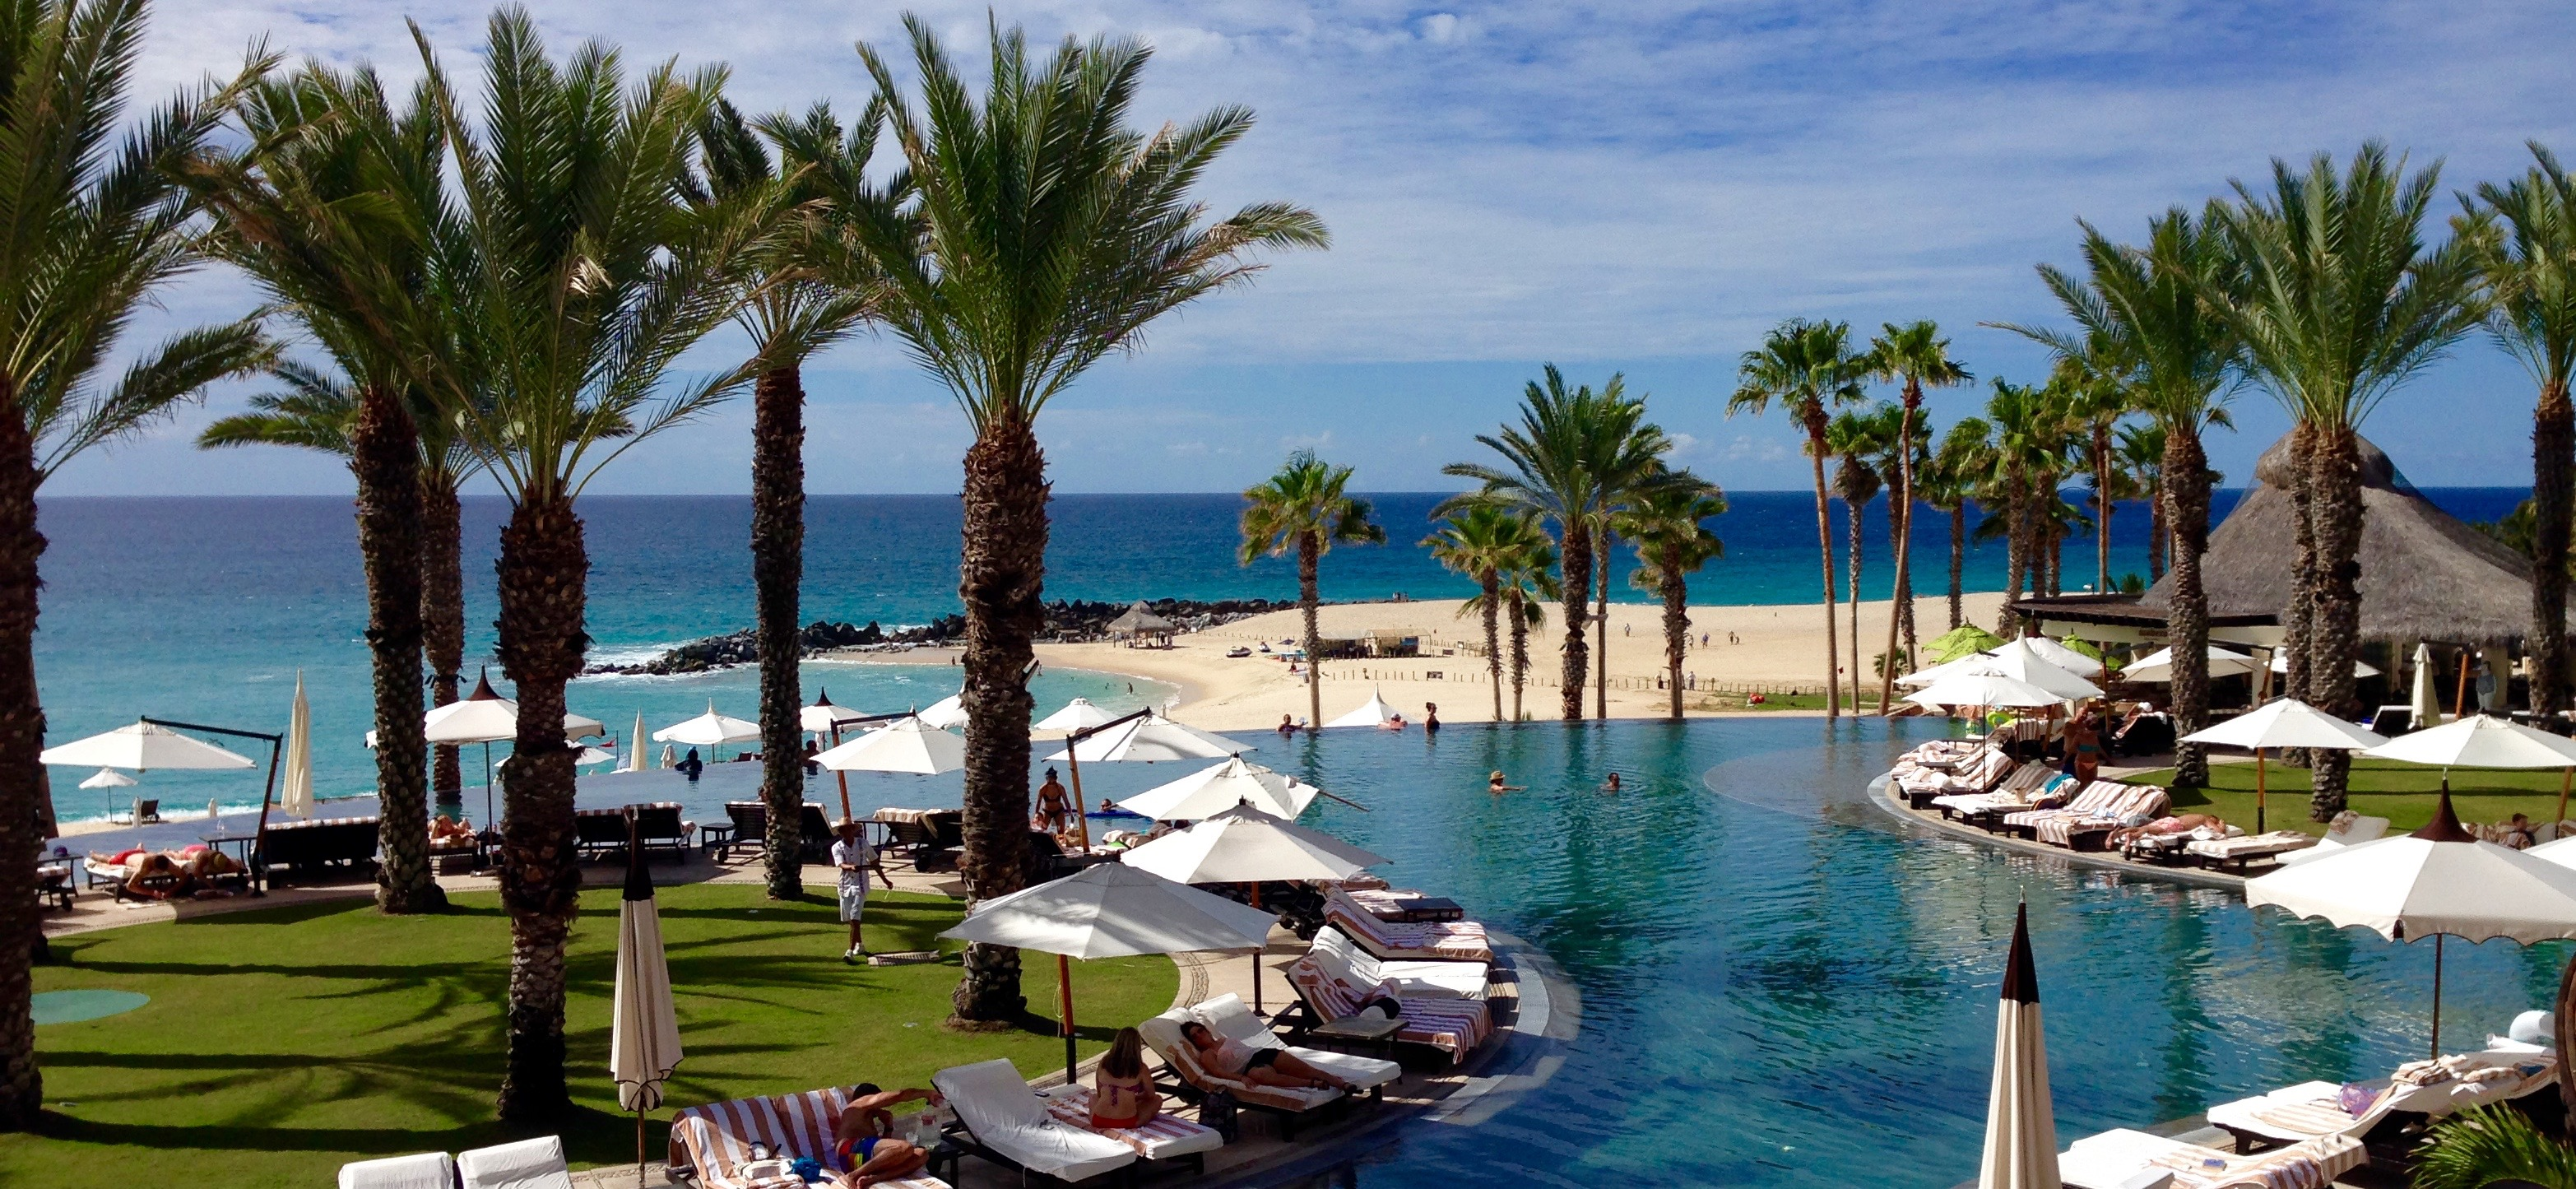 The Go To Mom Tv 187 The Go To Mom Tvhilton Los Cabos Is An